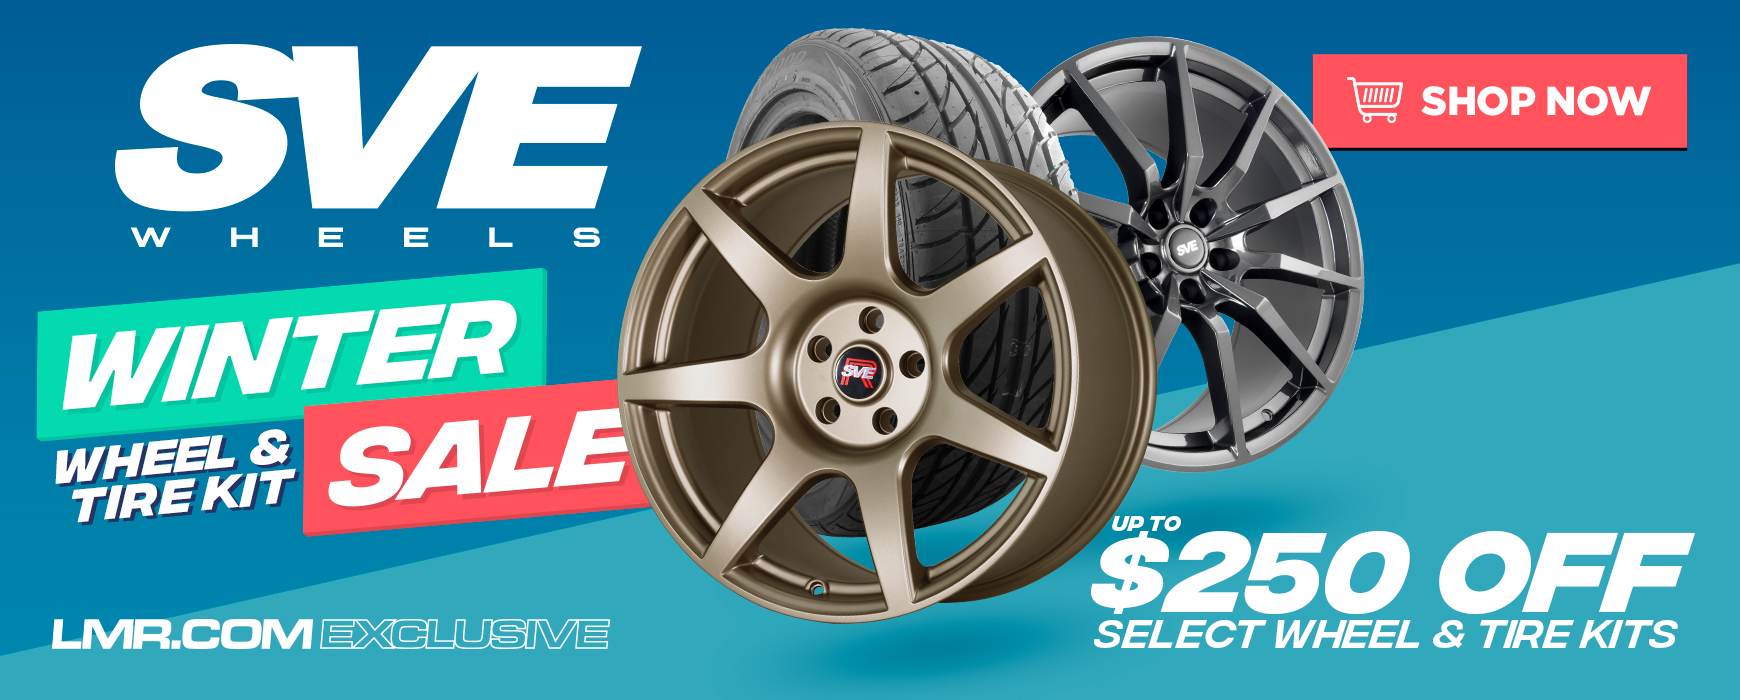 SVE Wheel & Tire Kit Sale